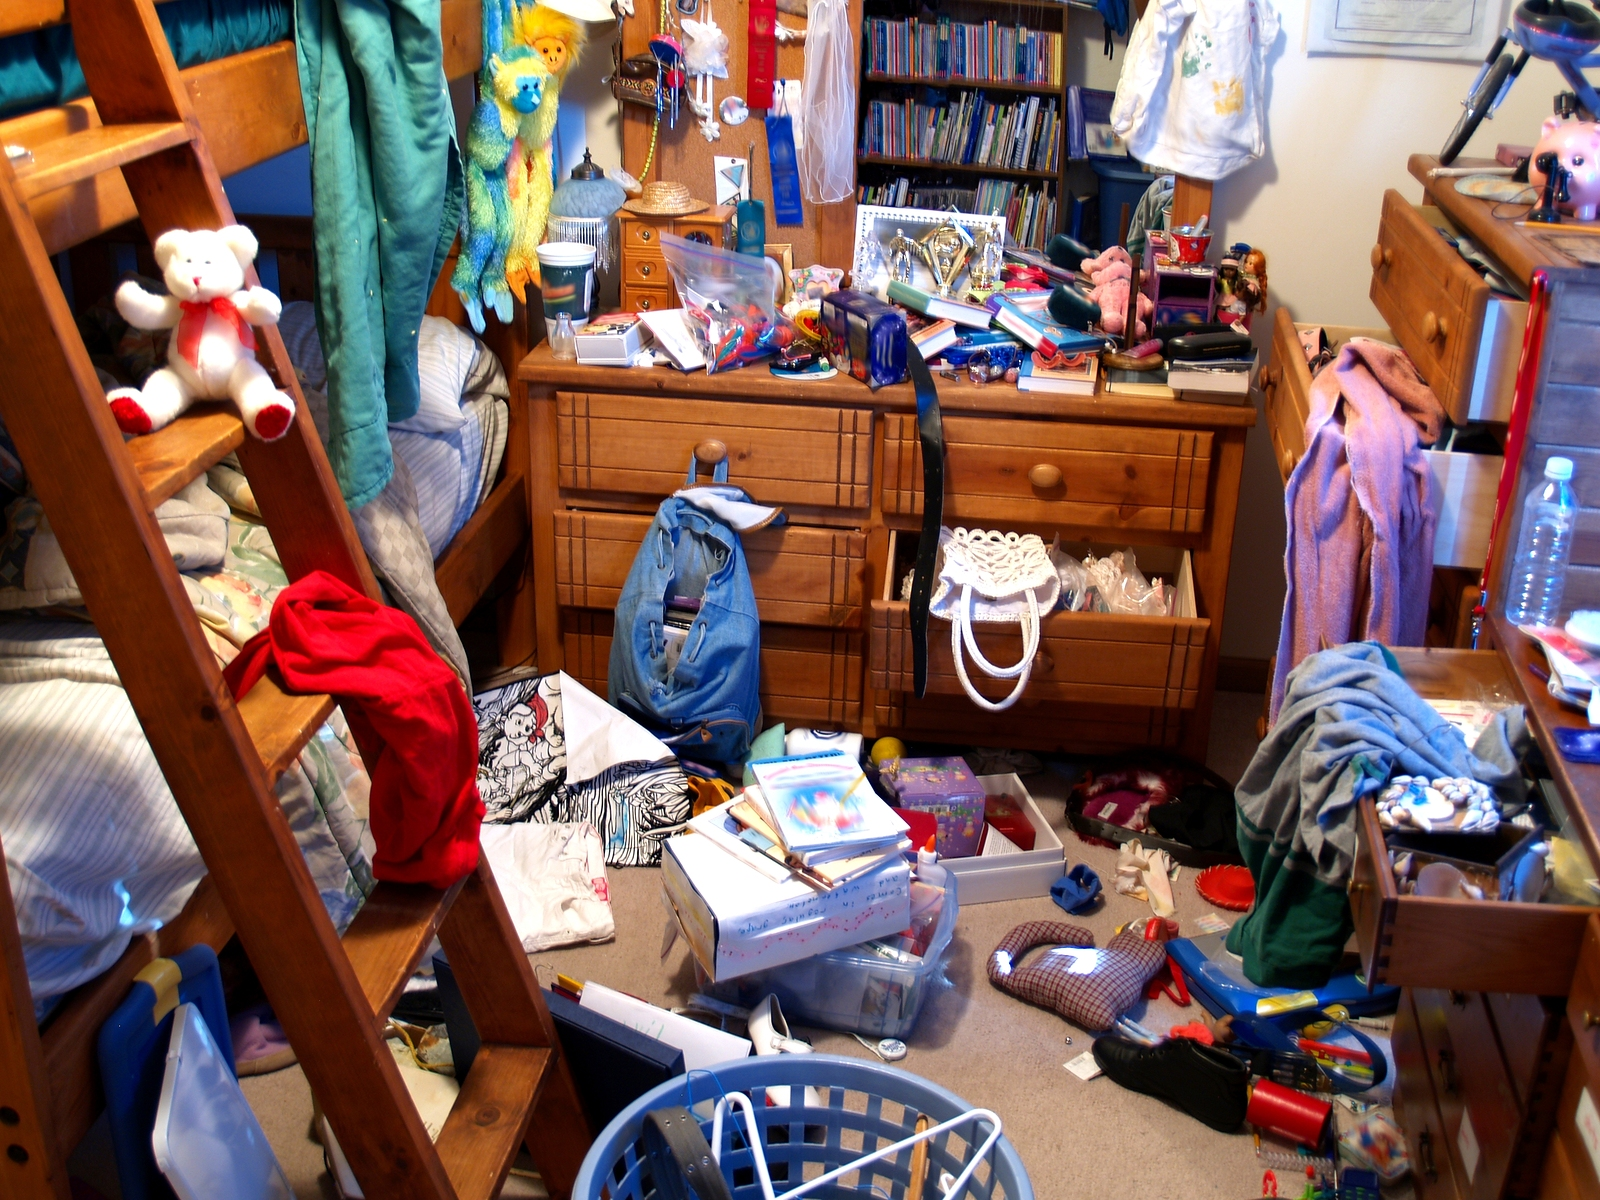 Here are 5 great tips that helped us rise above the clutter.